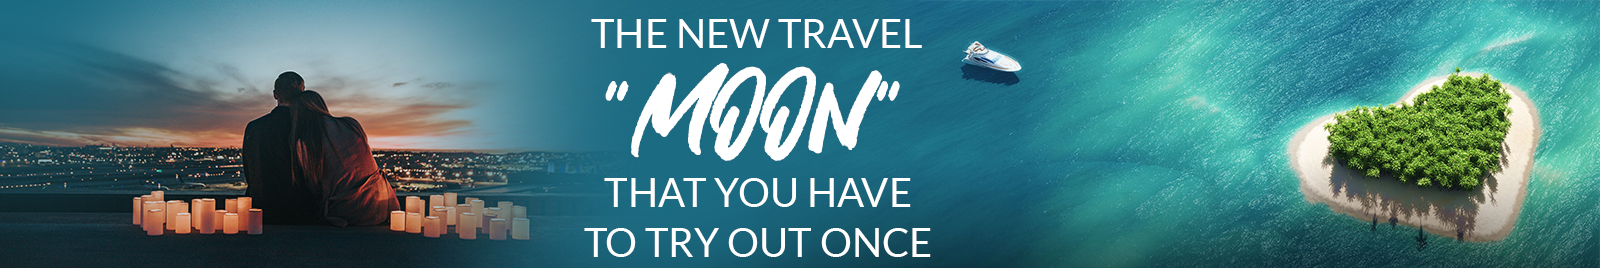 "The new travel ""moons"" that you have to try out once"